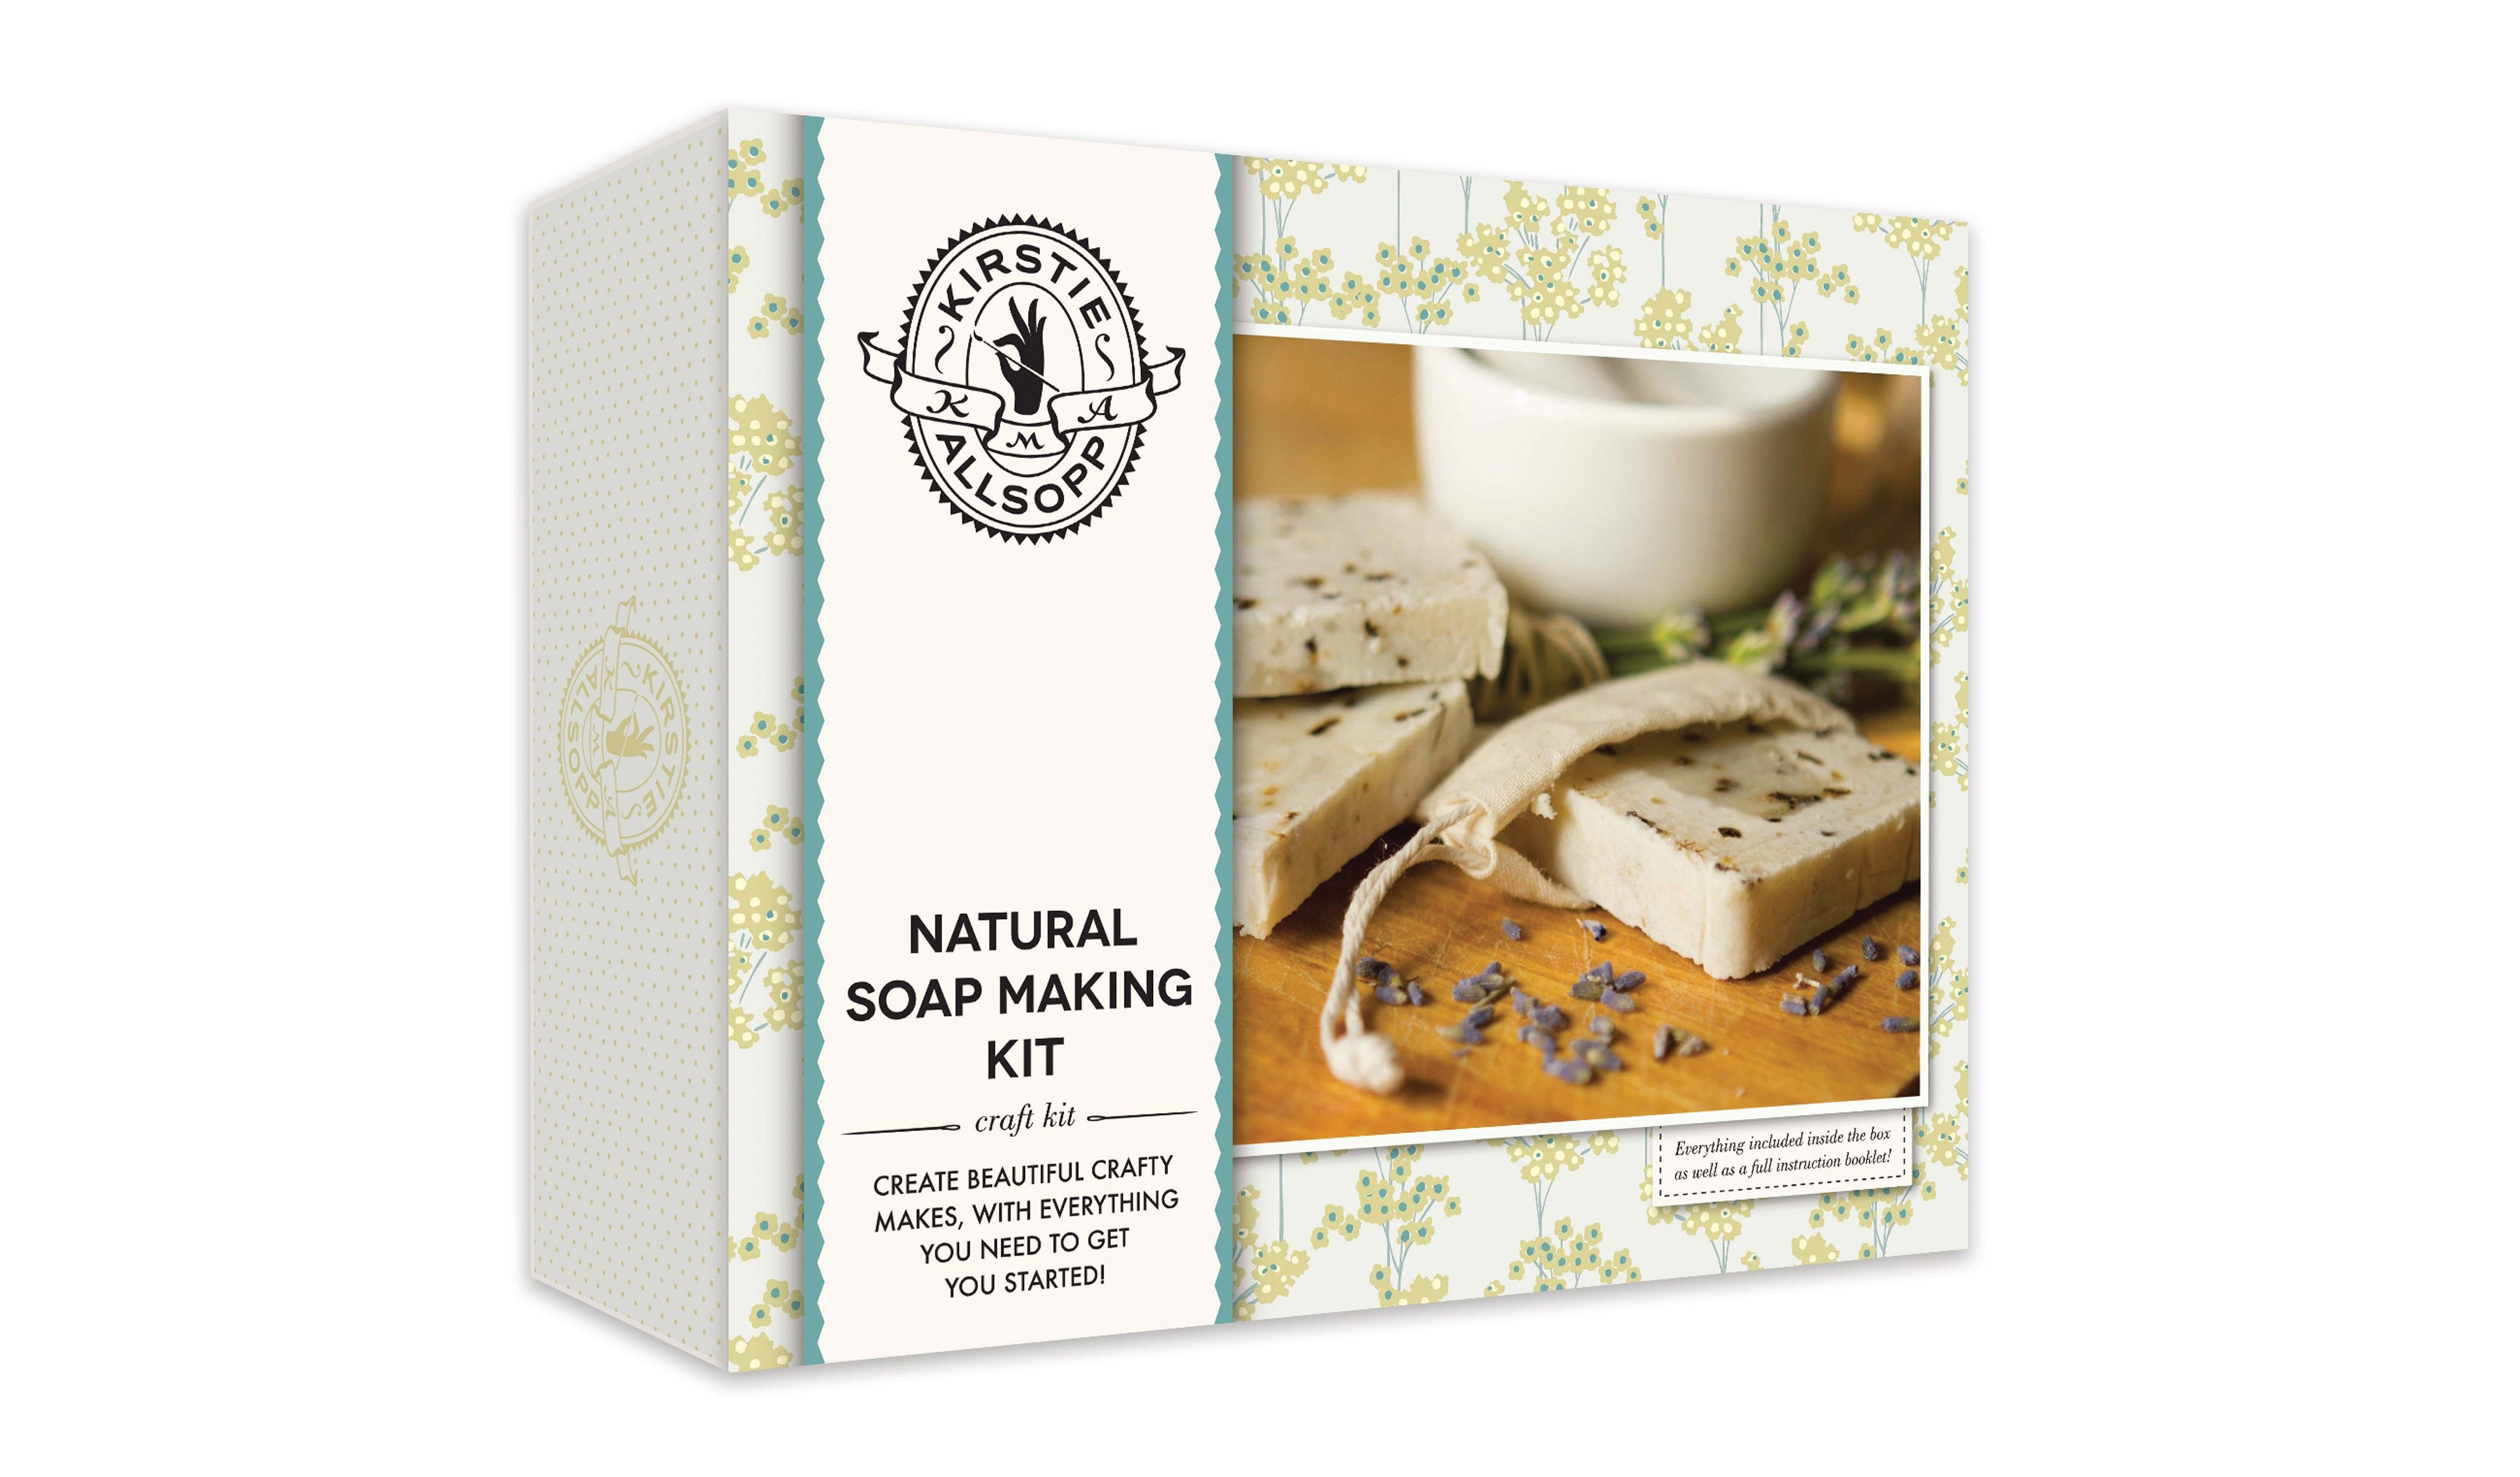 Kirstie Allsopp Natural Soap Making Kit exclusively